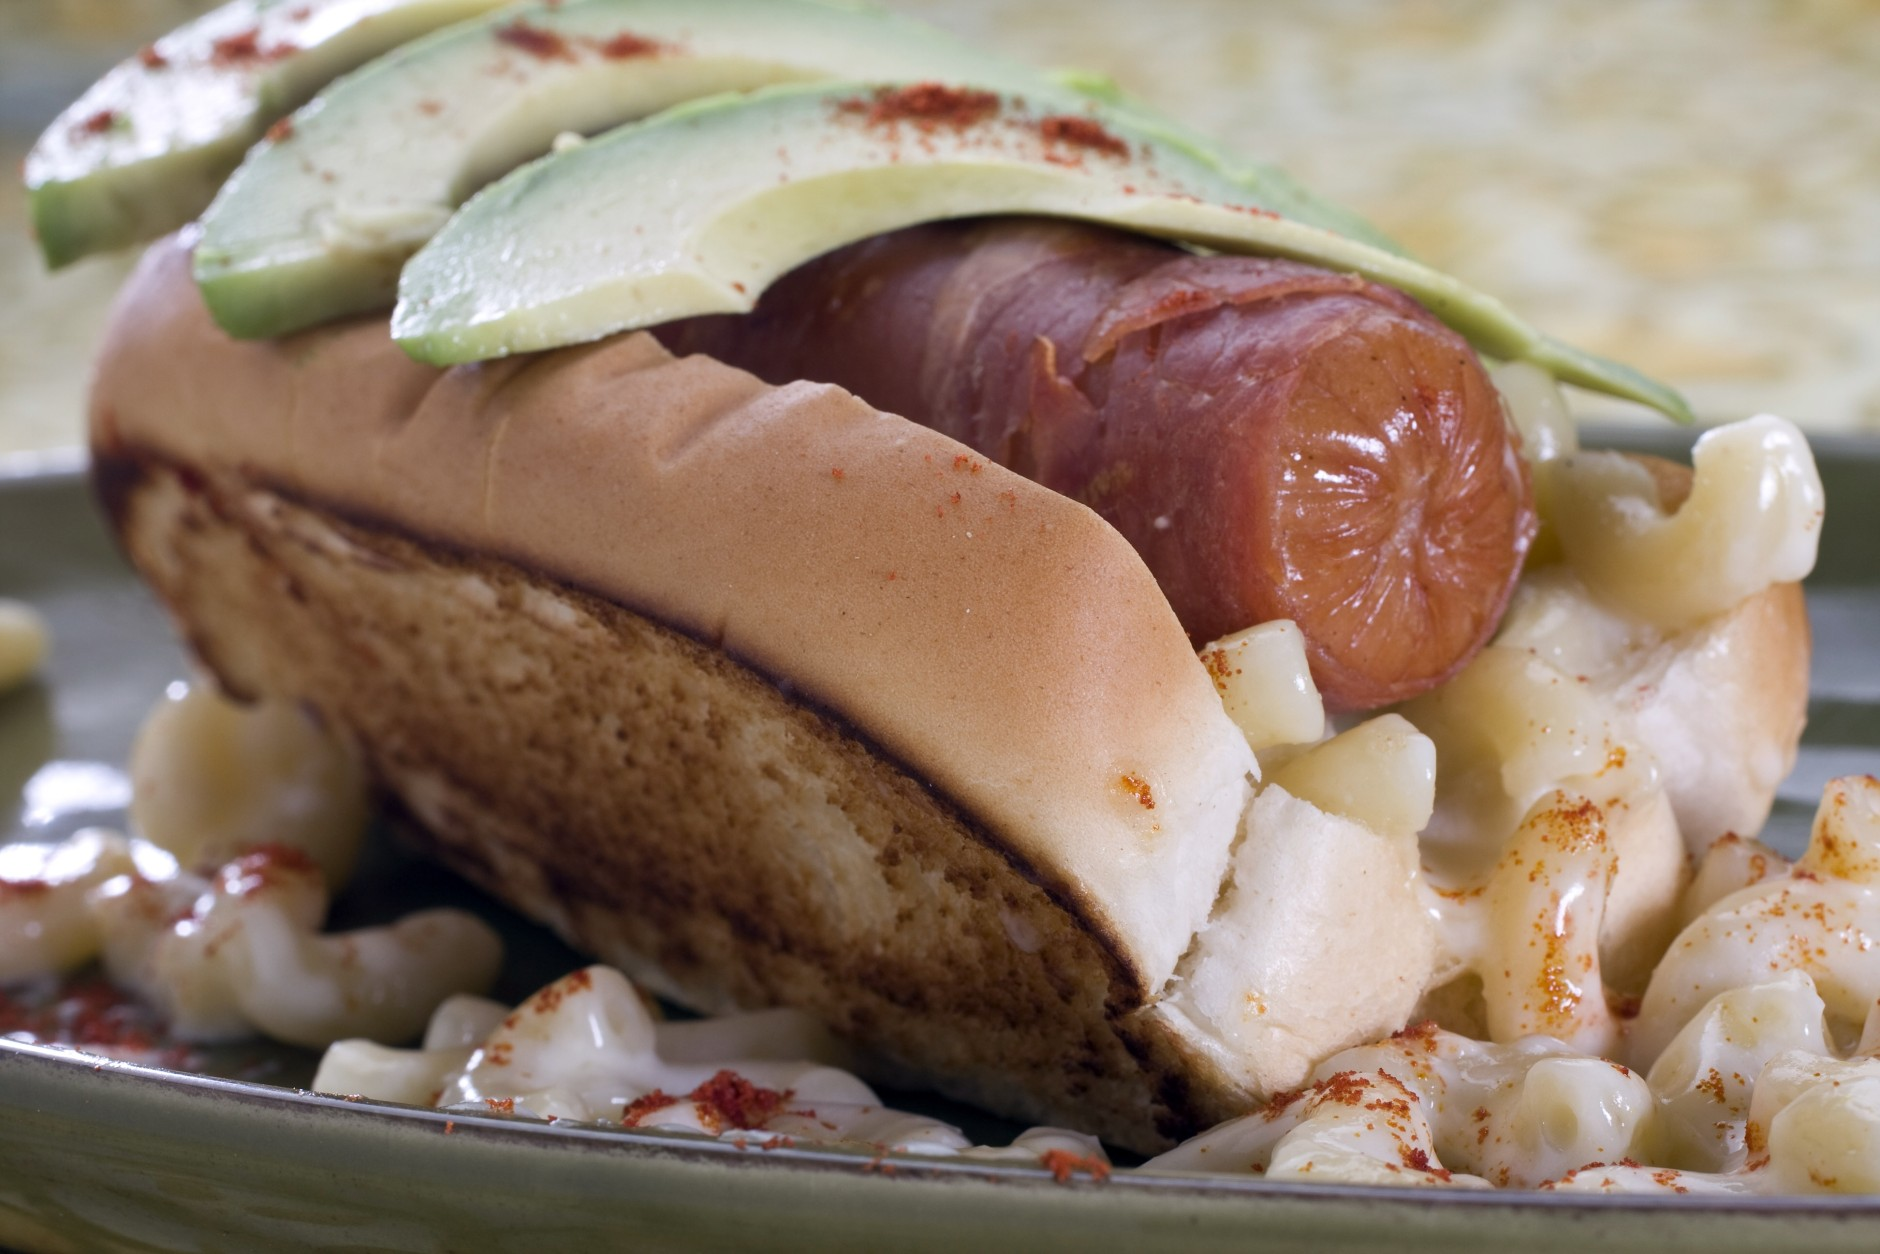 A maxed mac and cheese hotdog is seen in this May 2, 2010 photo. With a prosciutto wrap on the dog this recipe is a summer favorite in the extreme. (AP Photo/Larry Crowe)